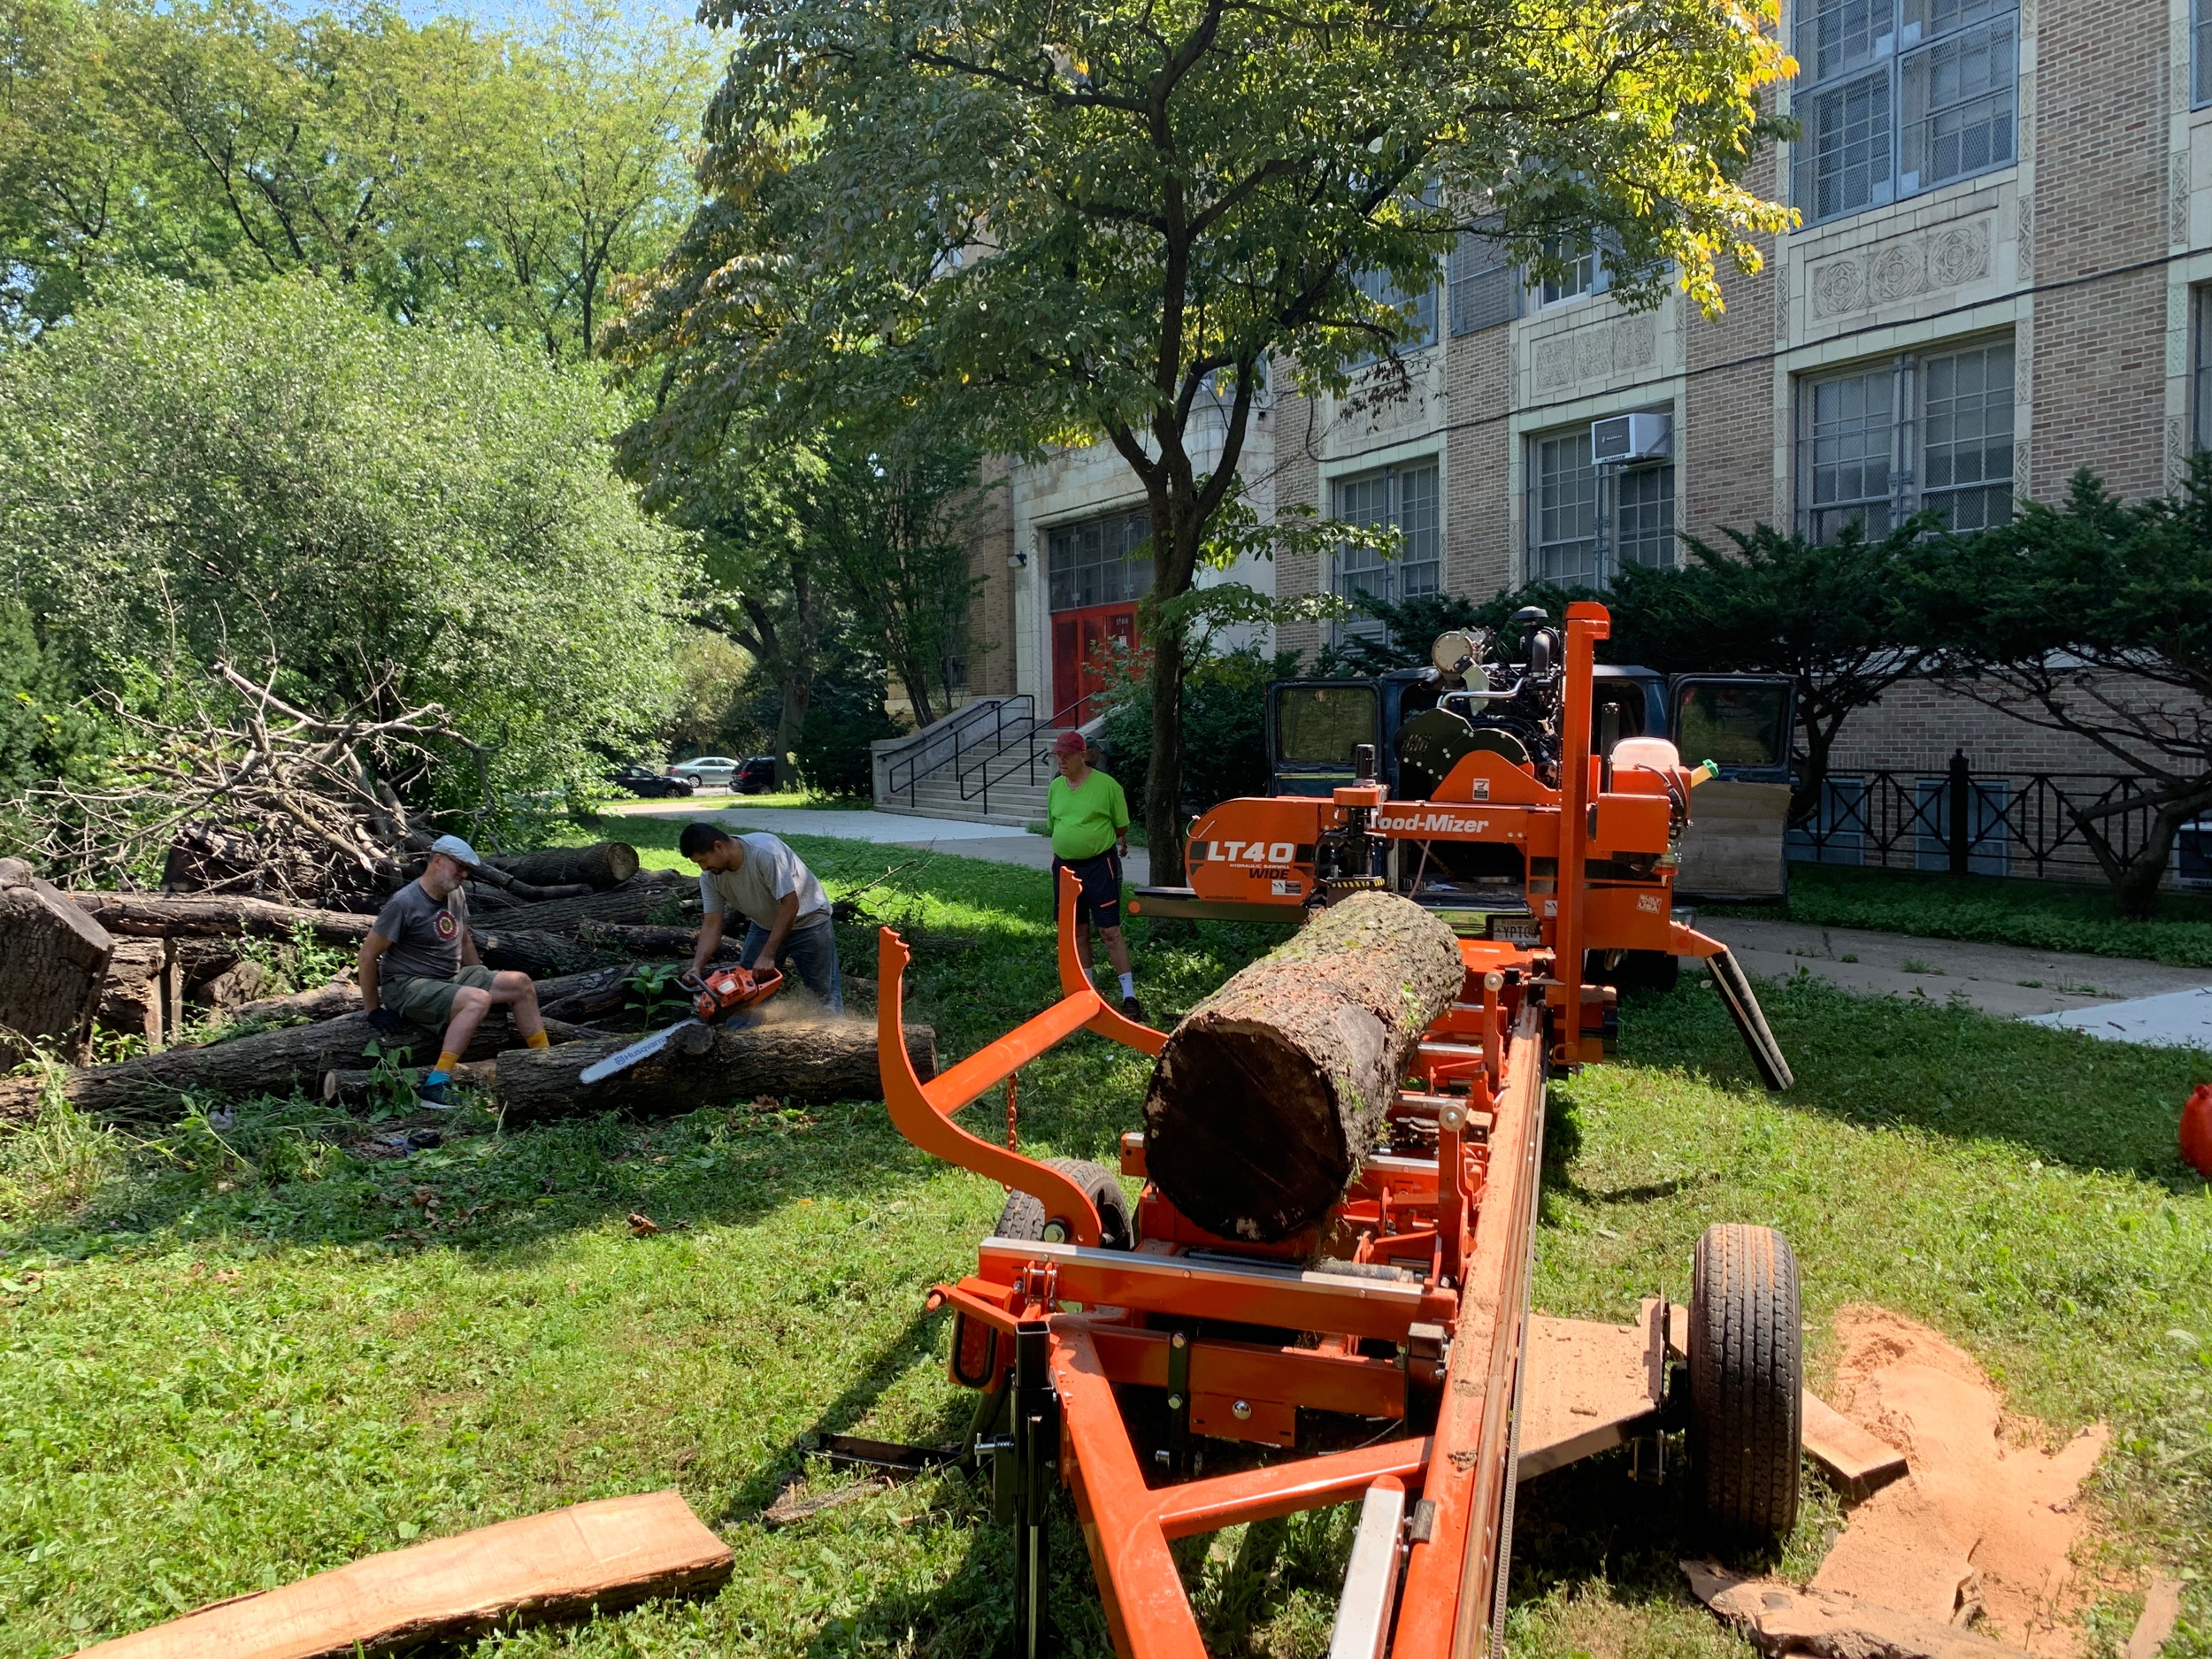 DeWitt Clinton High School in the Bronx - There is a community Garden group that saving the fallen trees.